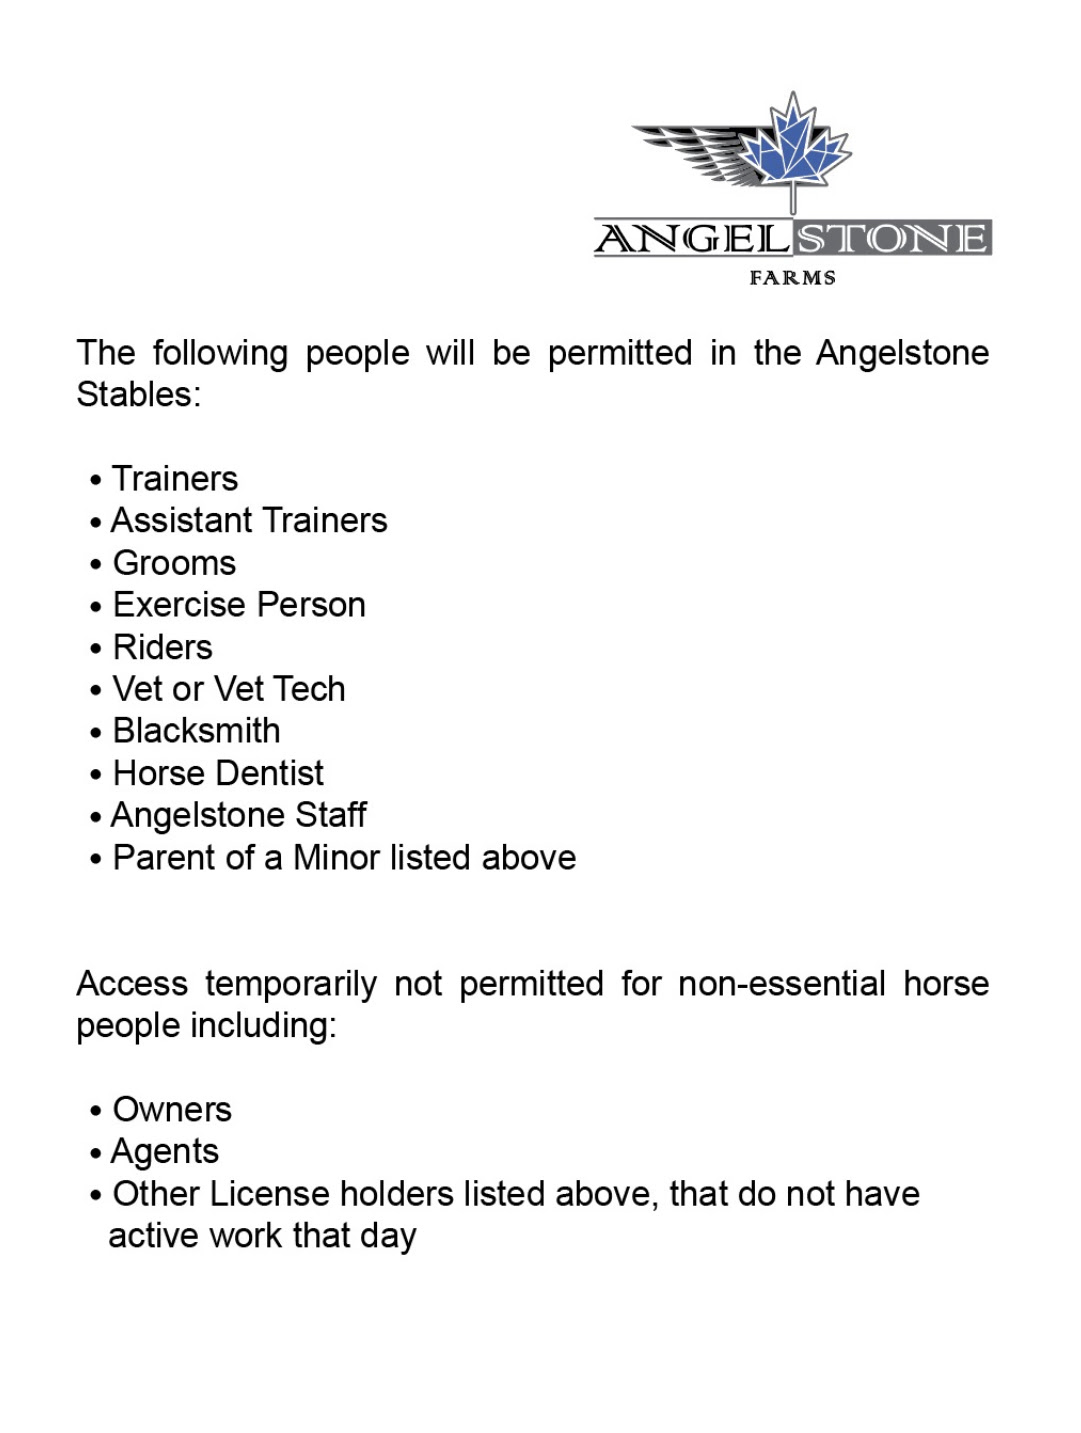 2020.06.11.99.99 Events COVID-19 Regulations at Angelstone Appendix